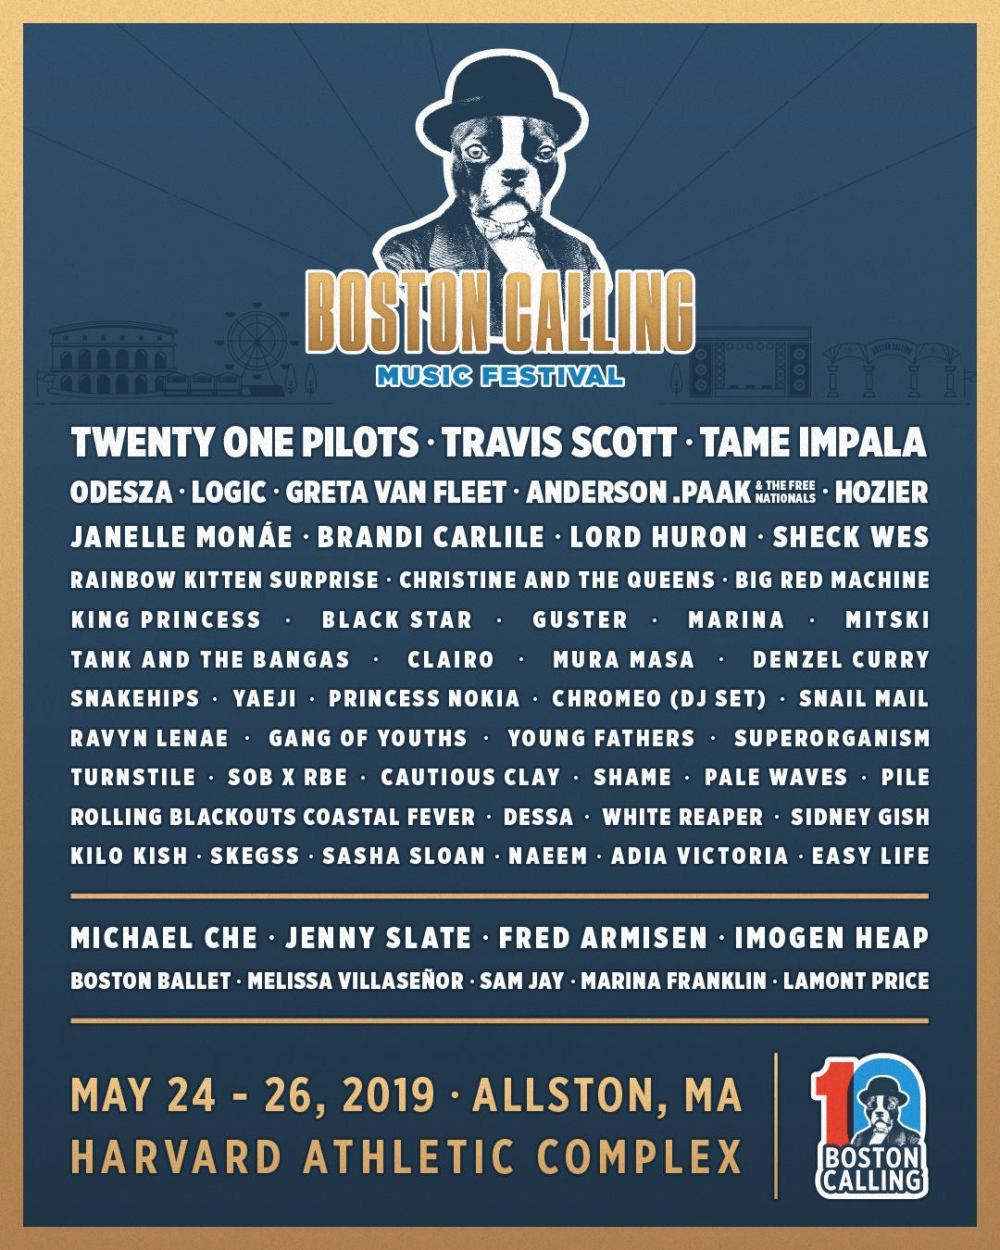 Boston Calling 2019 at Harvard Athletic Complex (Boston) - May 24th, 2019 - poster lineup